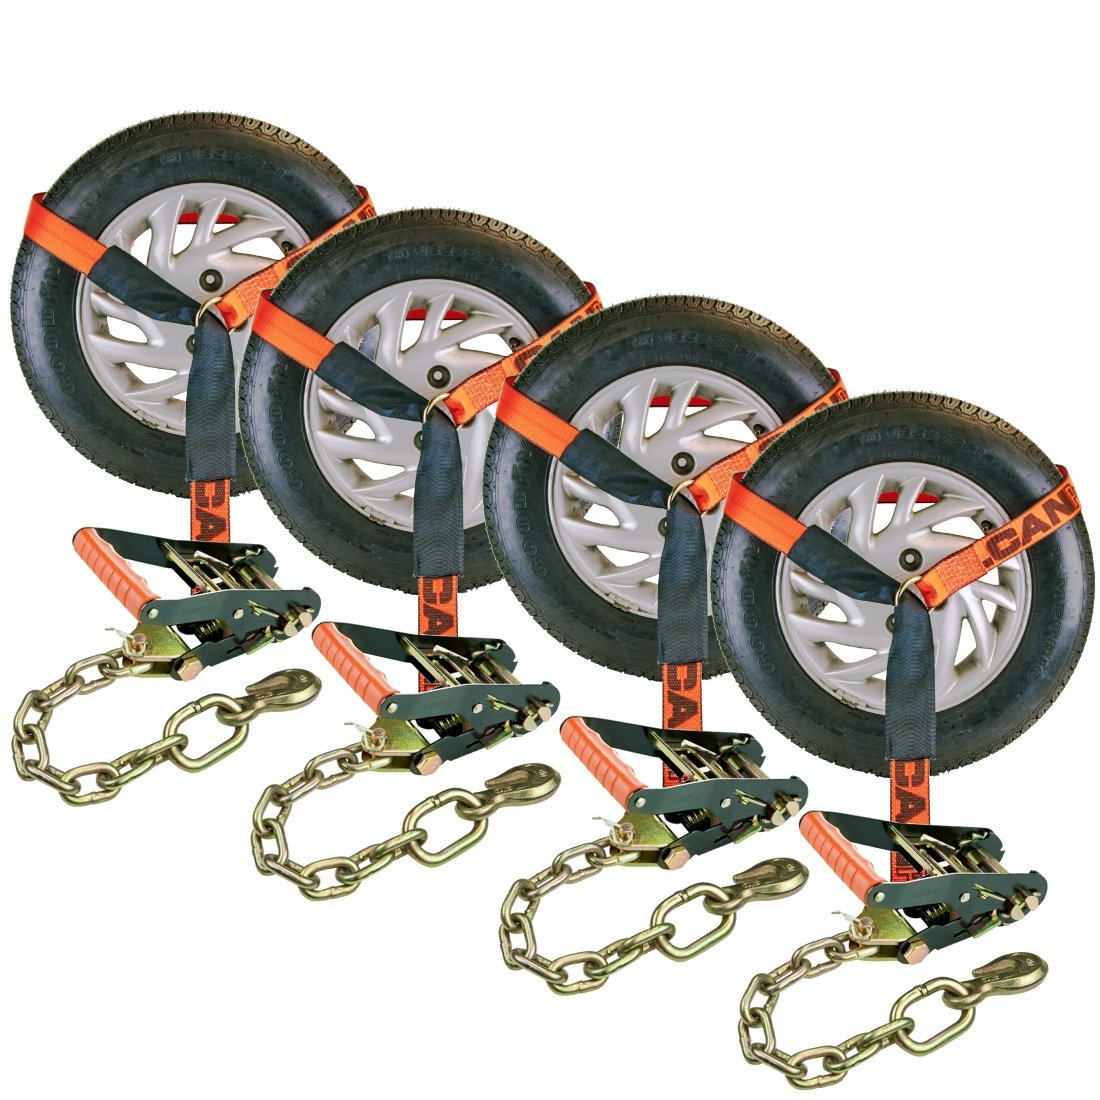 Vulcan ProSeries 96'' Lasso Auto Tie Down w/Chain Anchors, 3300 lbs. SWL, 4 Pack